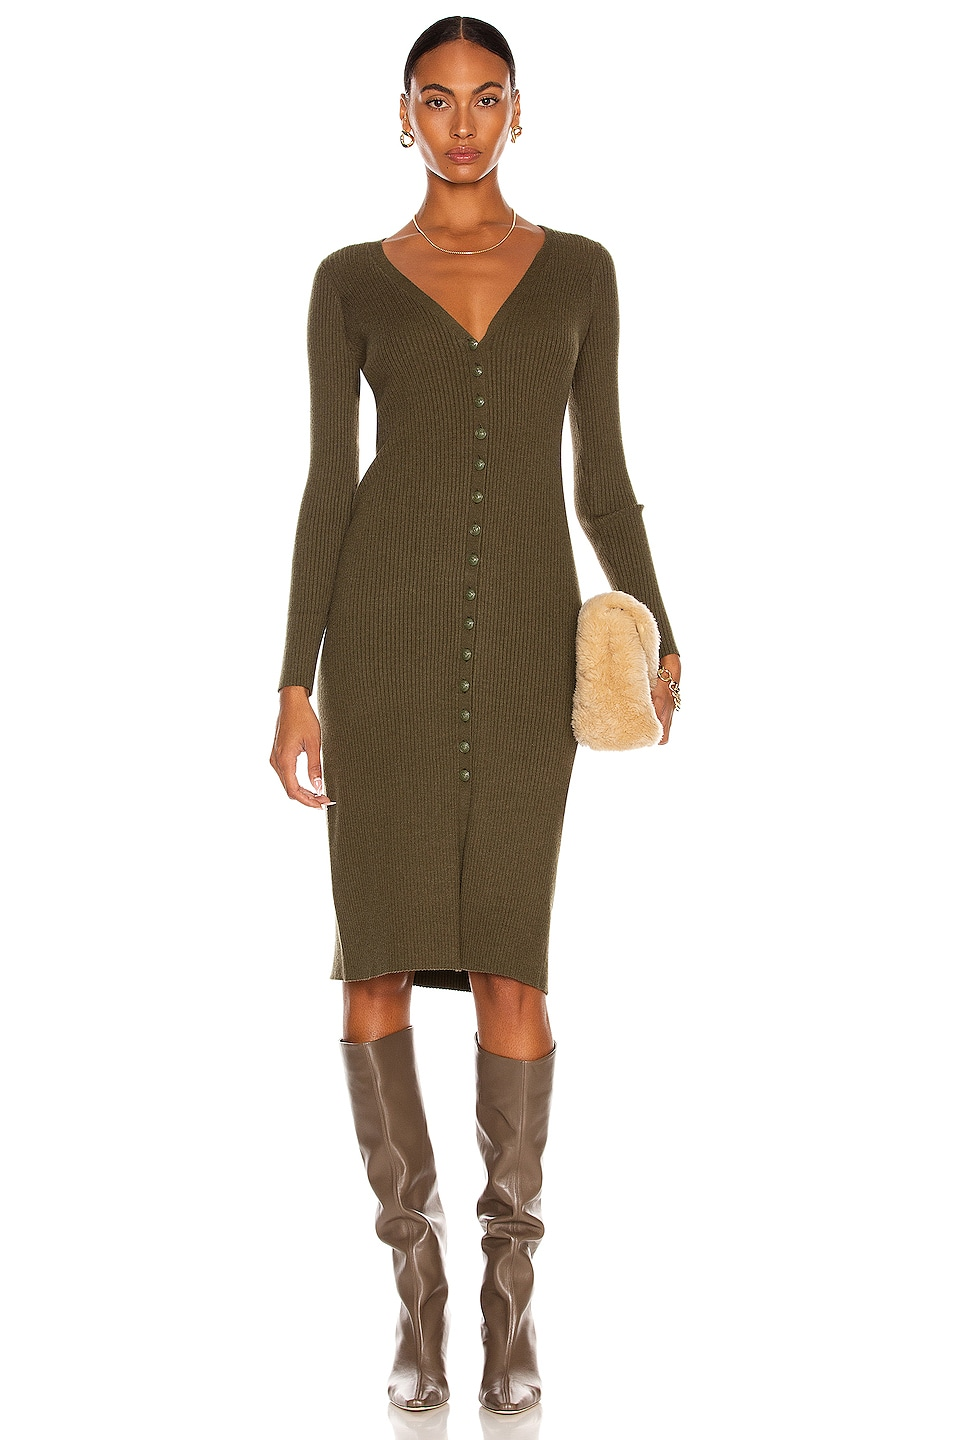 Image 1 of L'AGENCE Maci Button Duster Cardigan Dress in Ivy Green